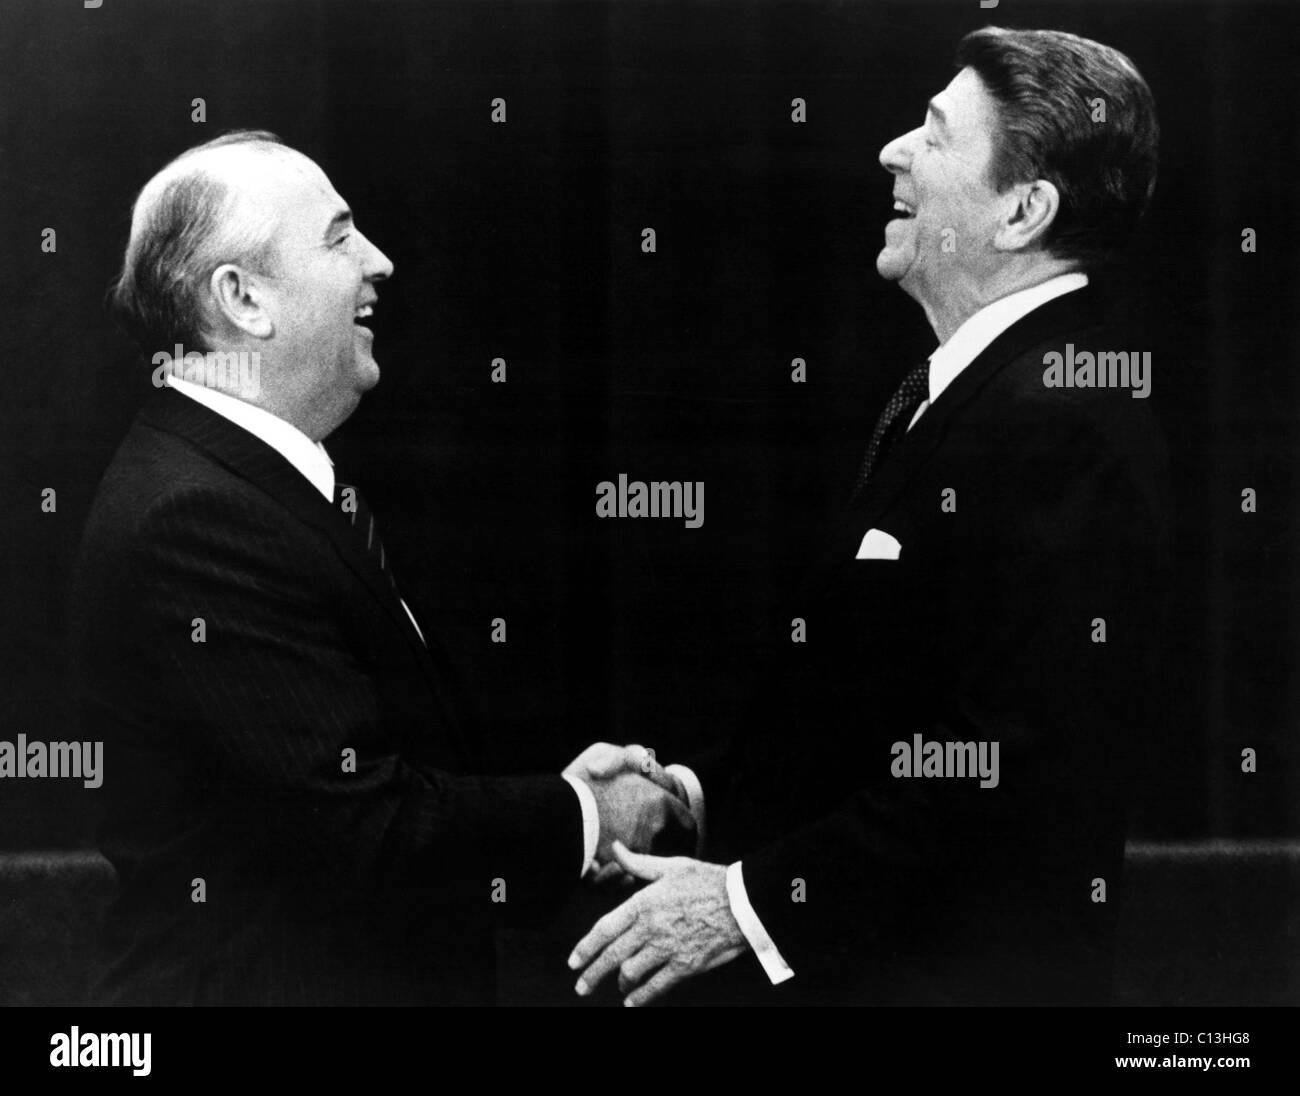 Soviet Premier Mikhail Gorbachev shaking hands with U.S. President Ronald Reagan in the 1980s - Stock Image